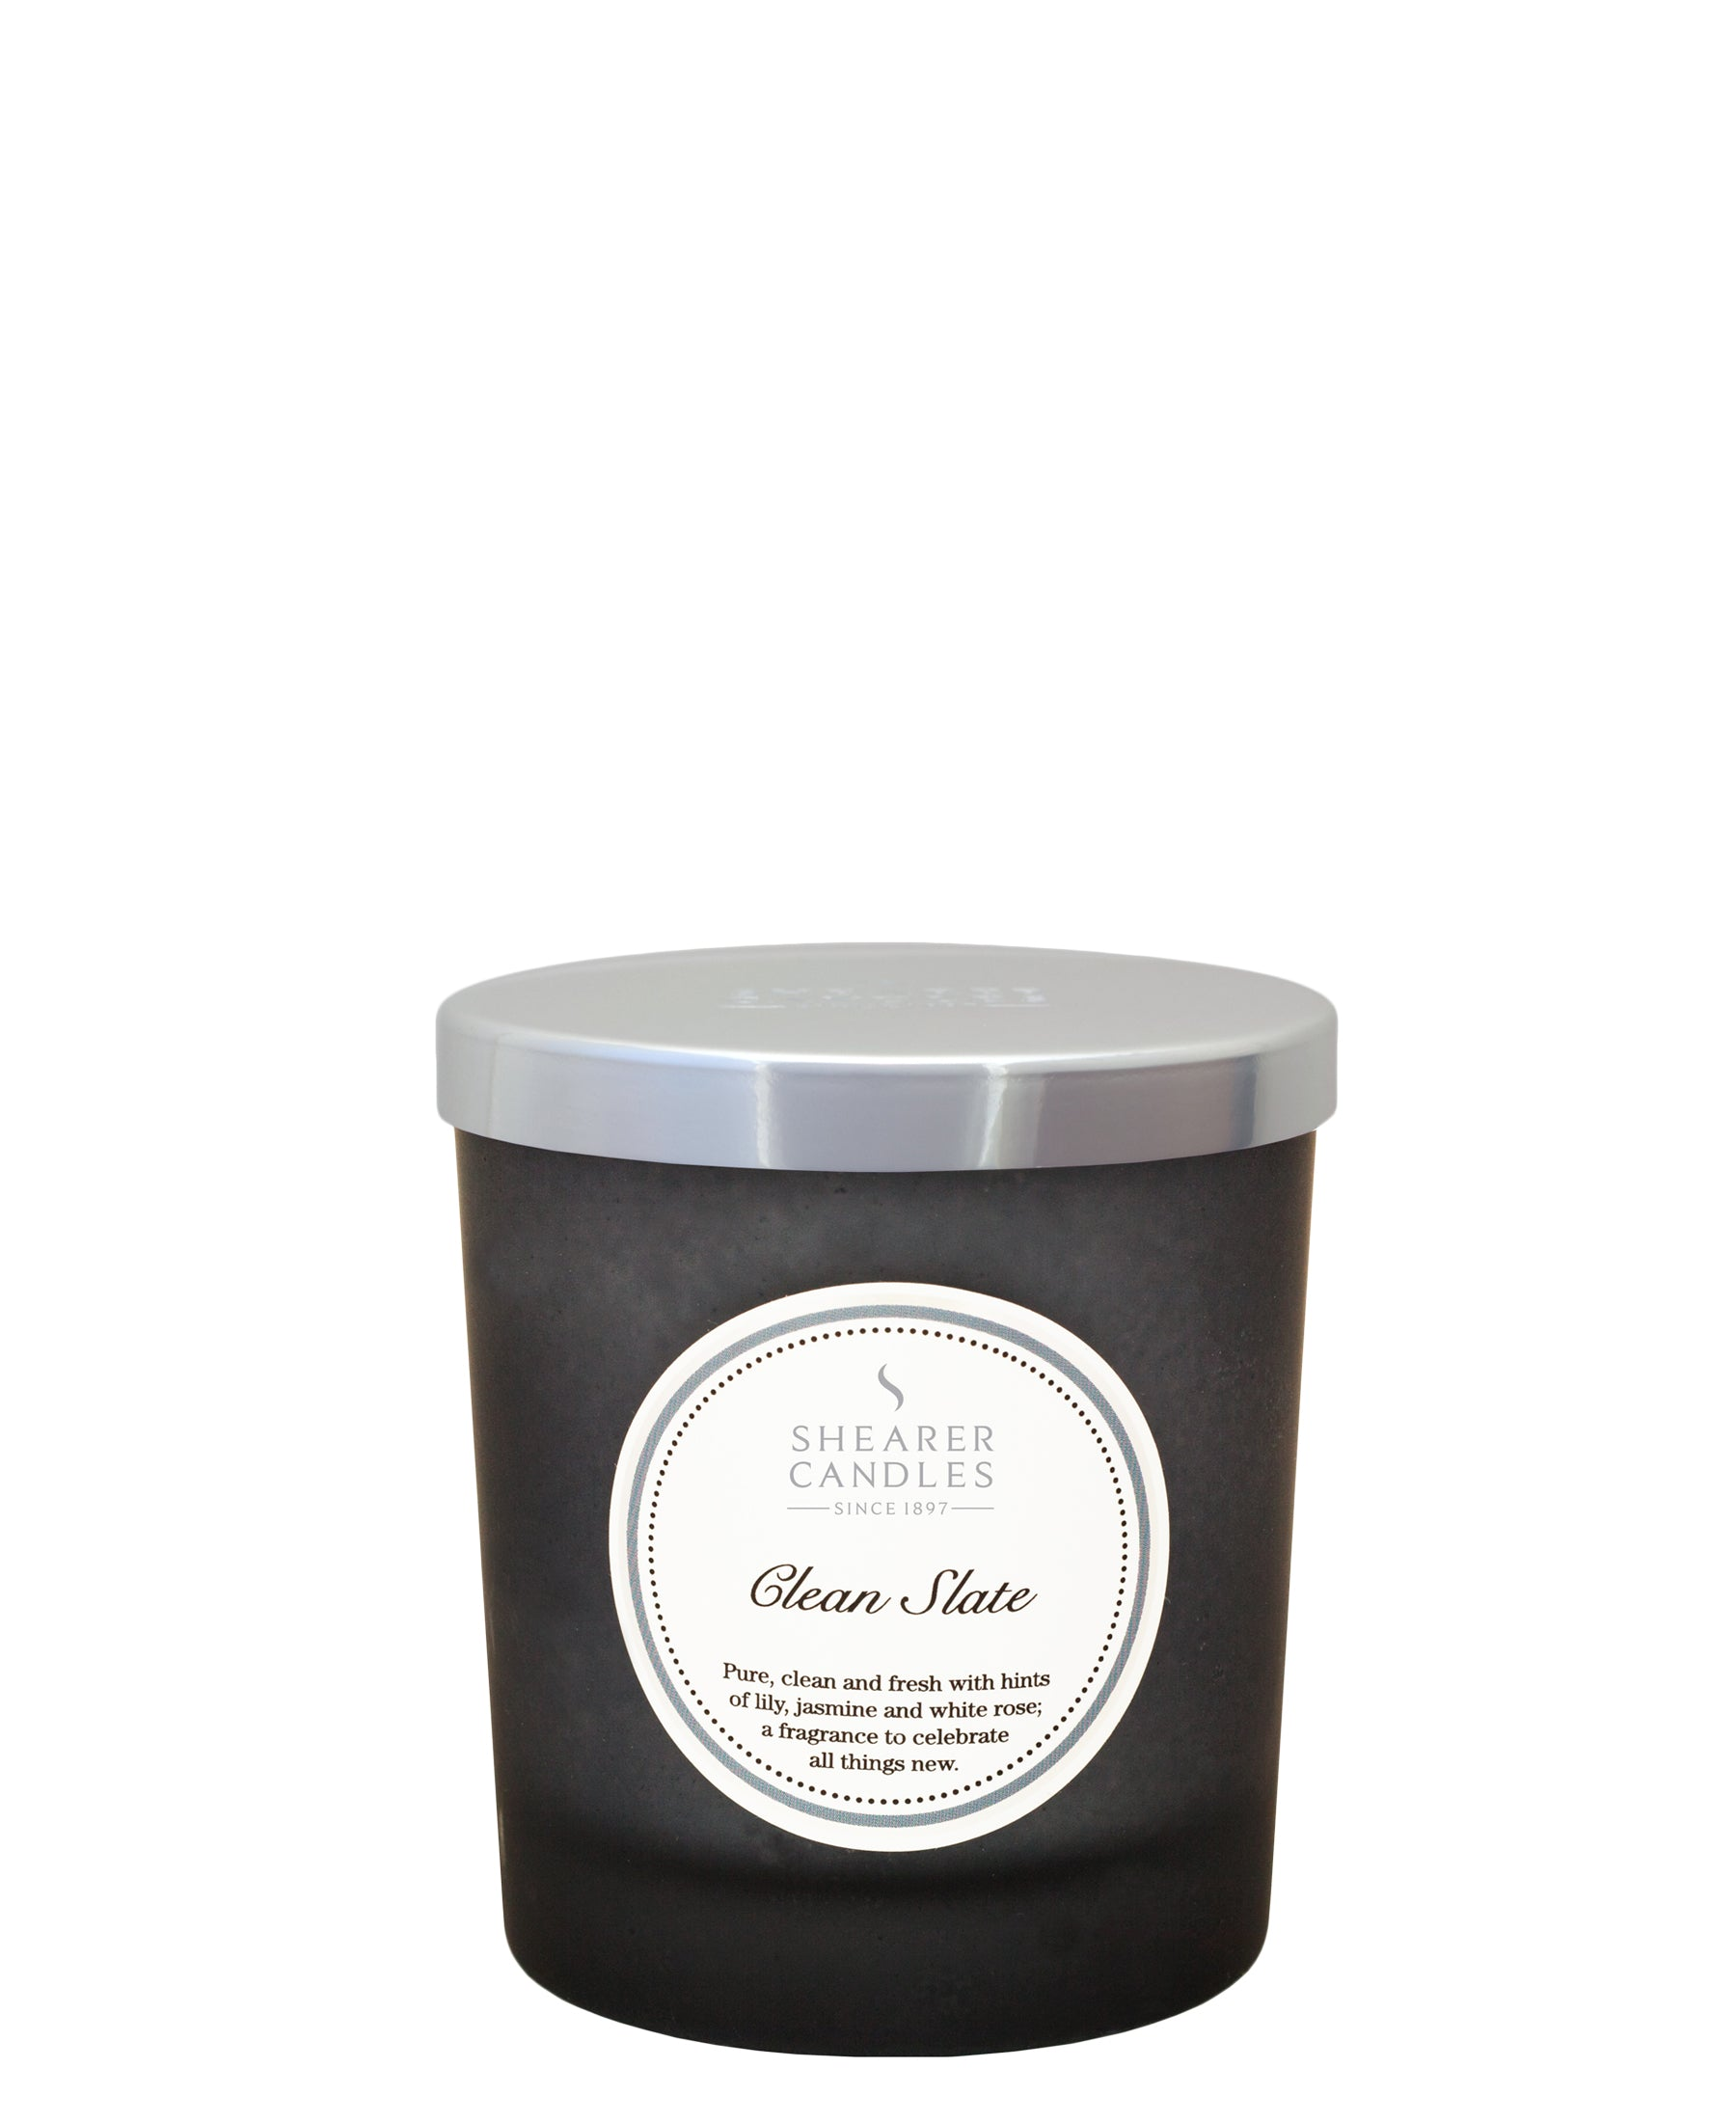 Shearer Candles Clean Slate Small Jar